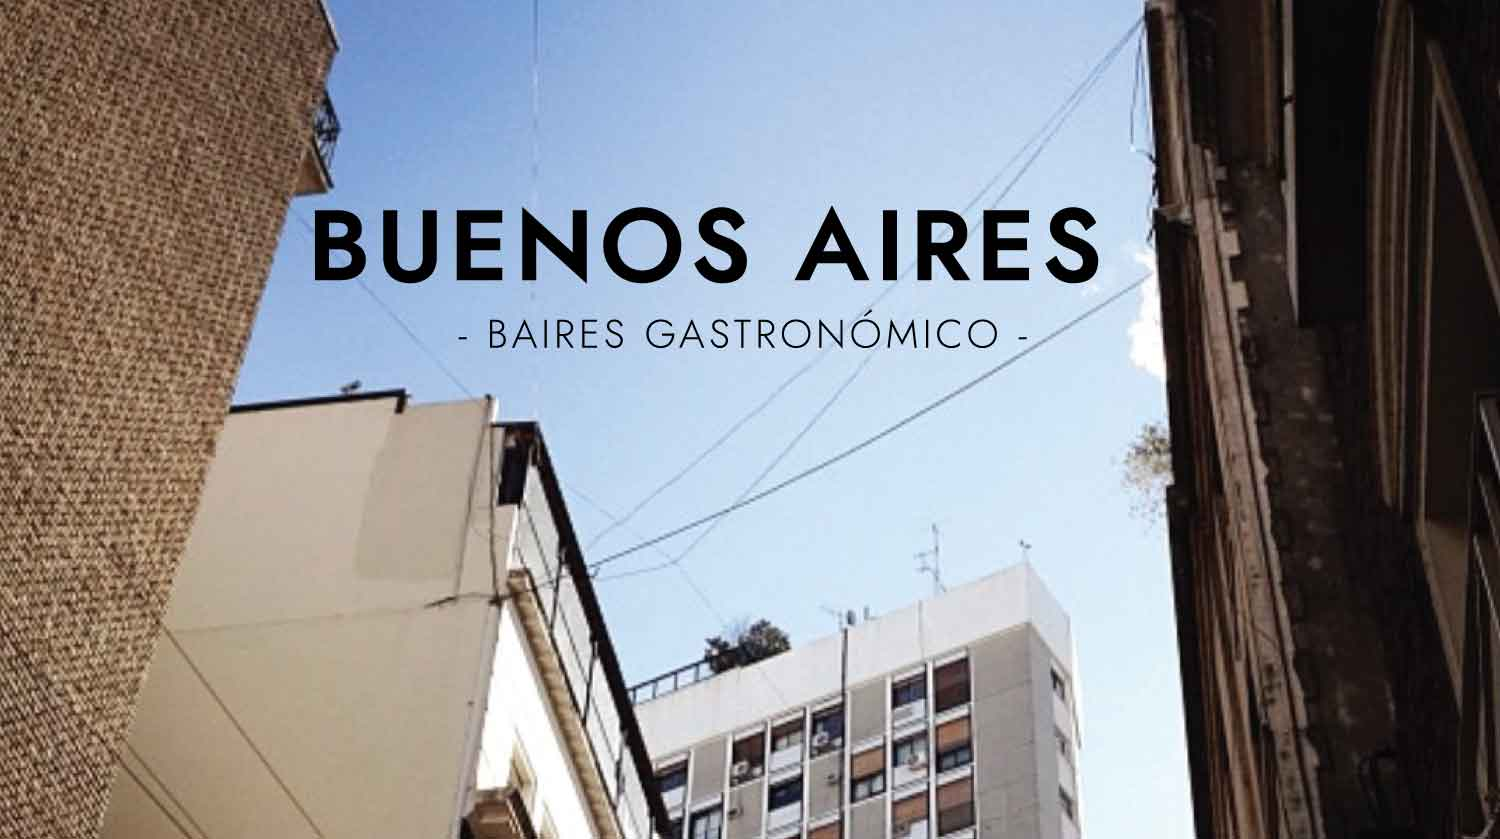 BUENOS-AIRES-SLIDER-NEW